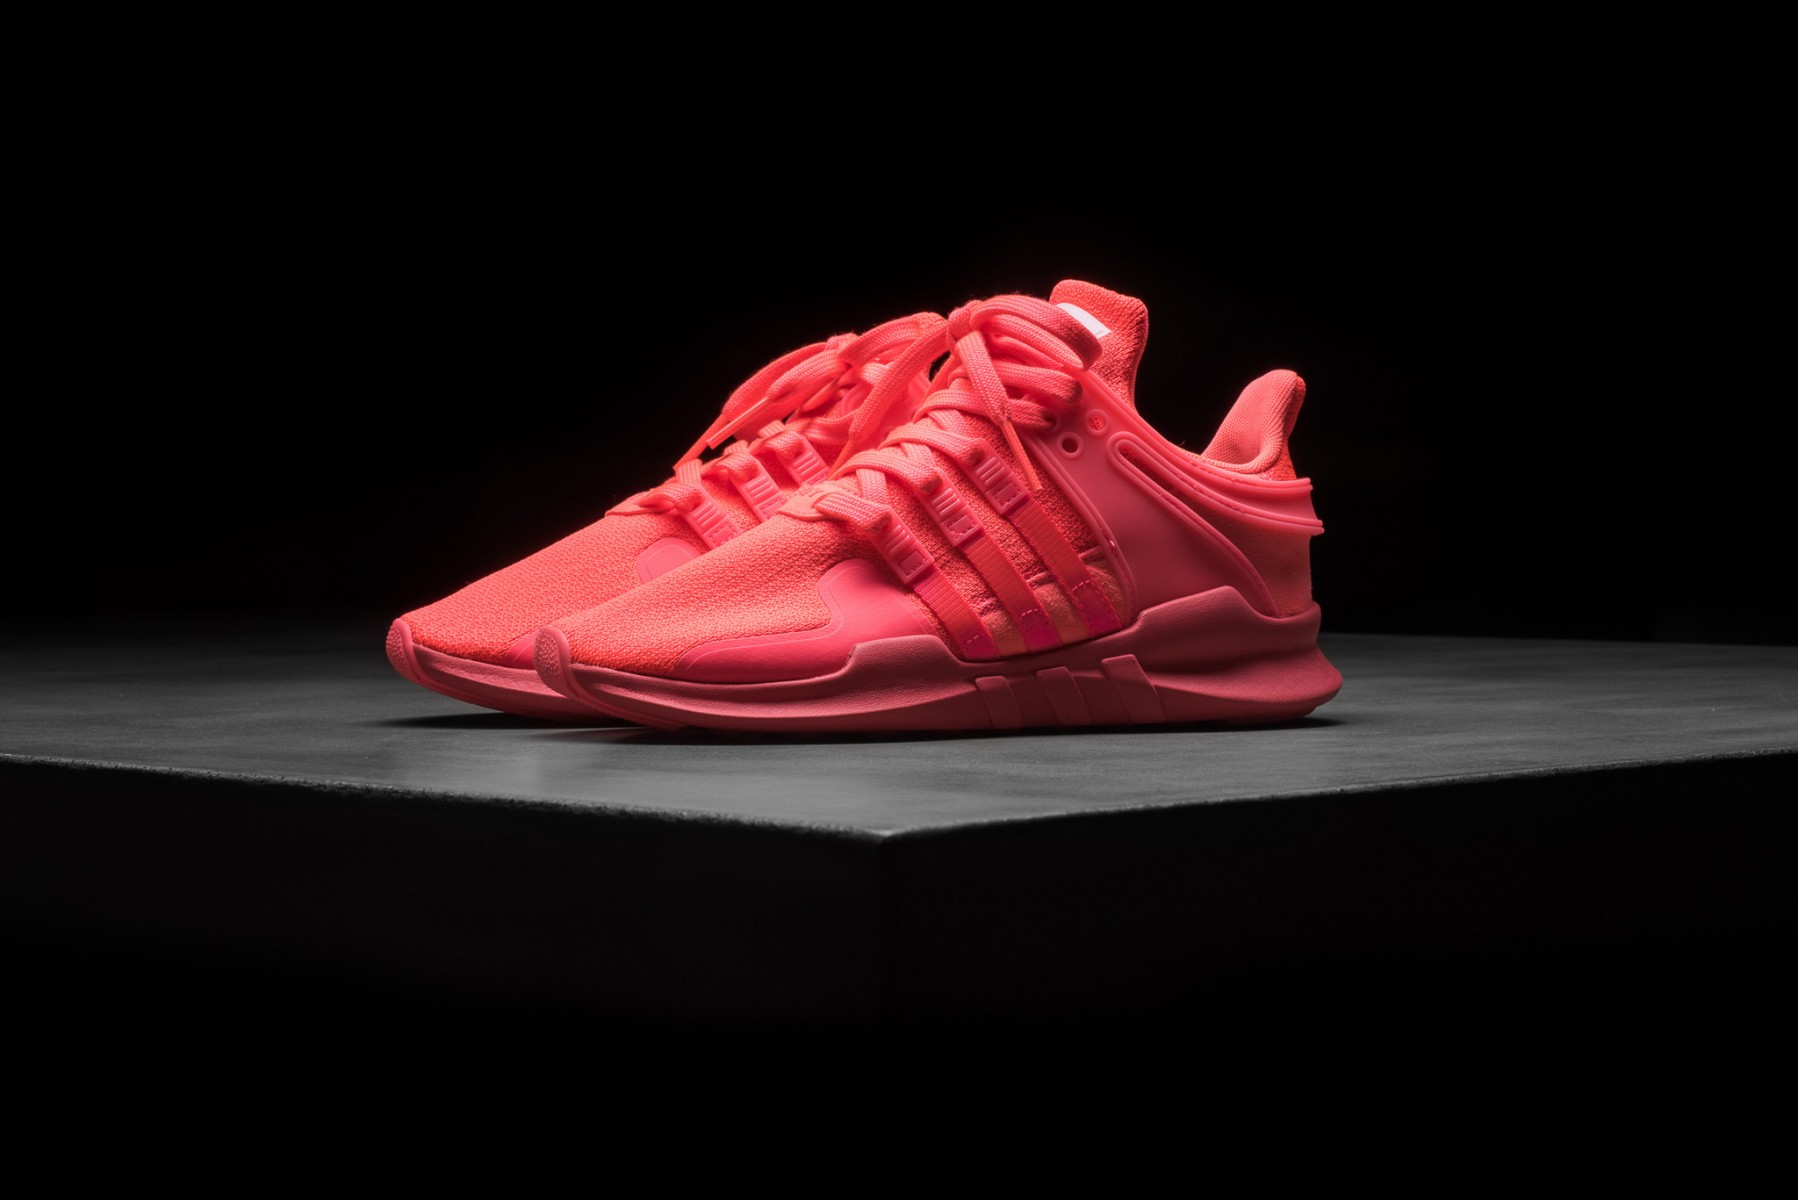 adidas-eqt-advance-support-hot-pink-1-1798x1200